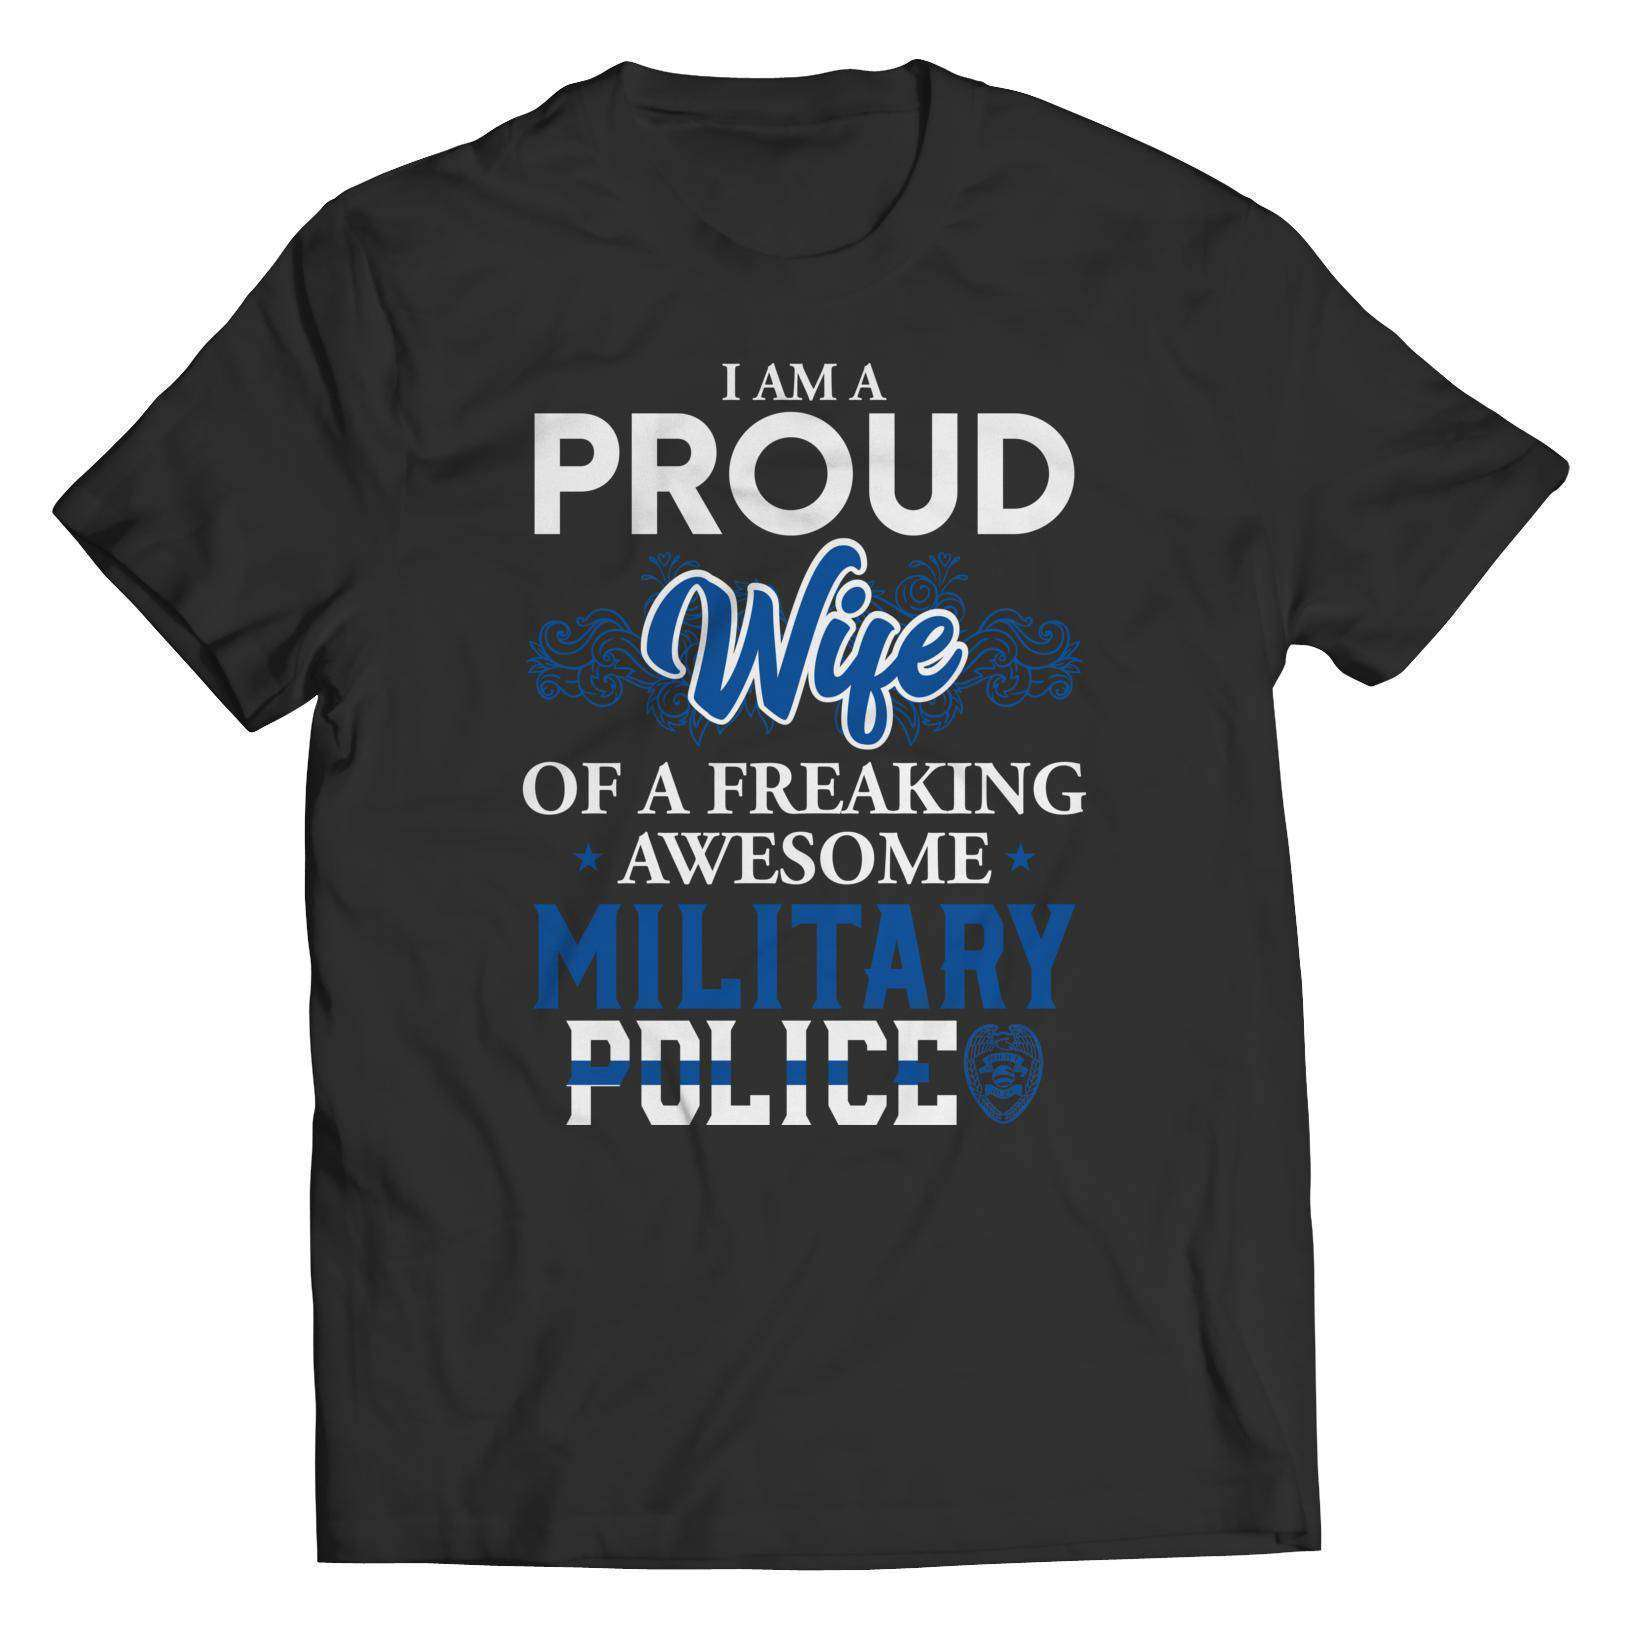 I'm A Proud Wife Of A Freaking Awesome Military Police - Unisex Shirt - RhinocerosX